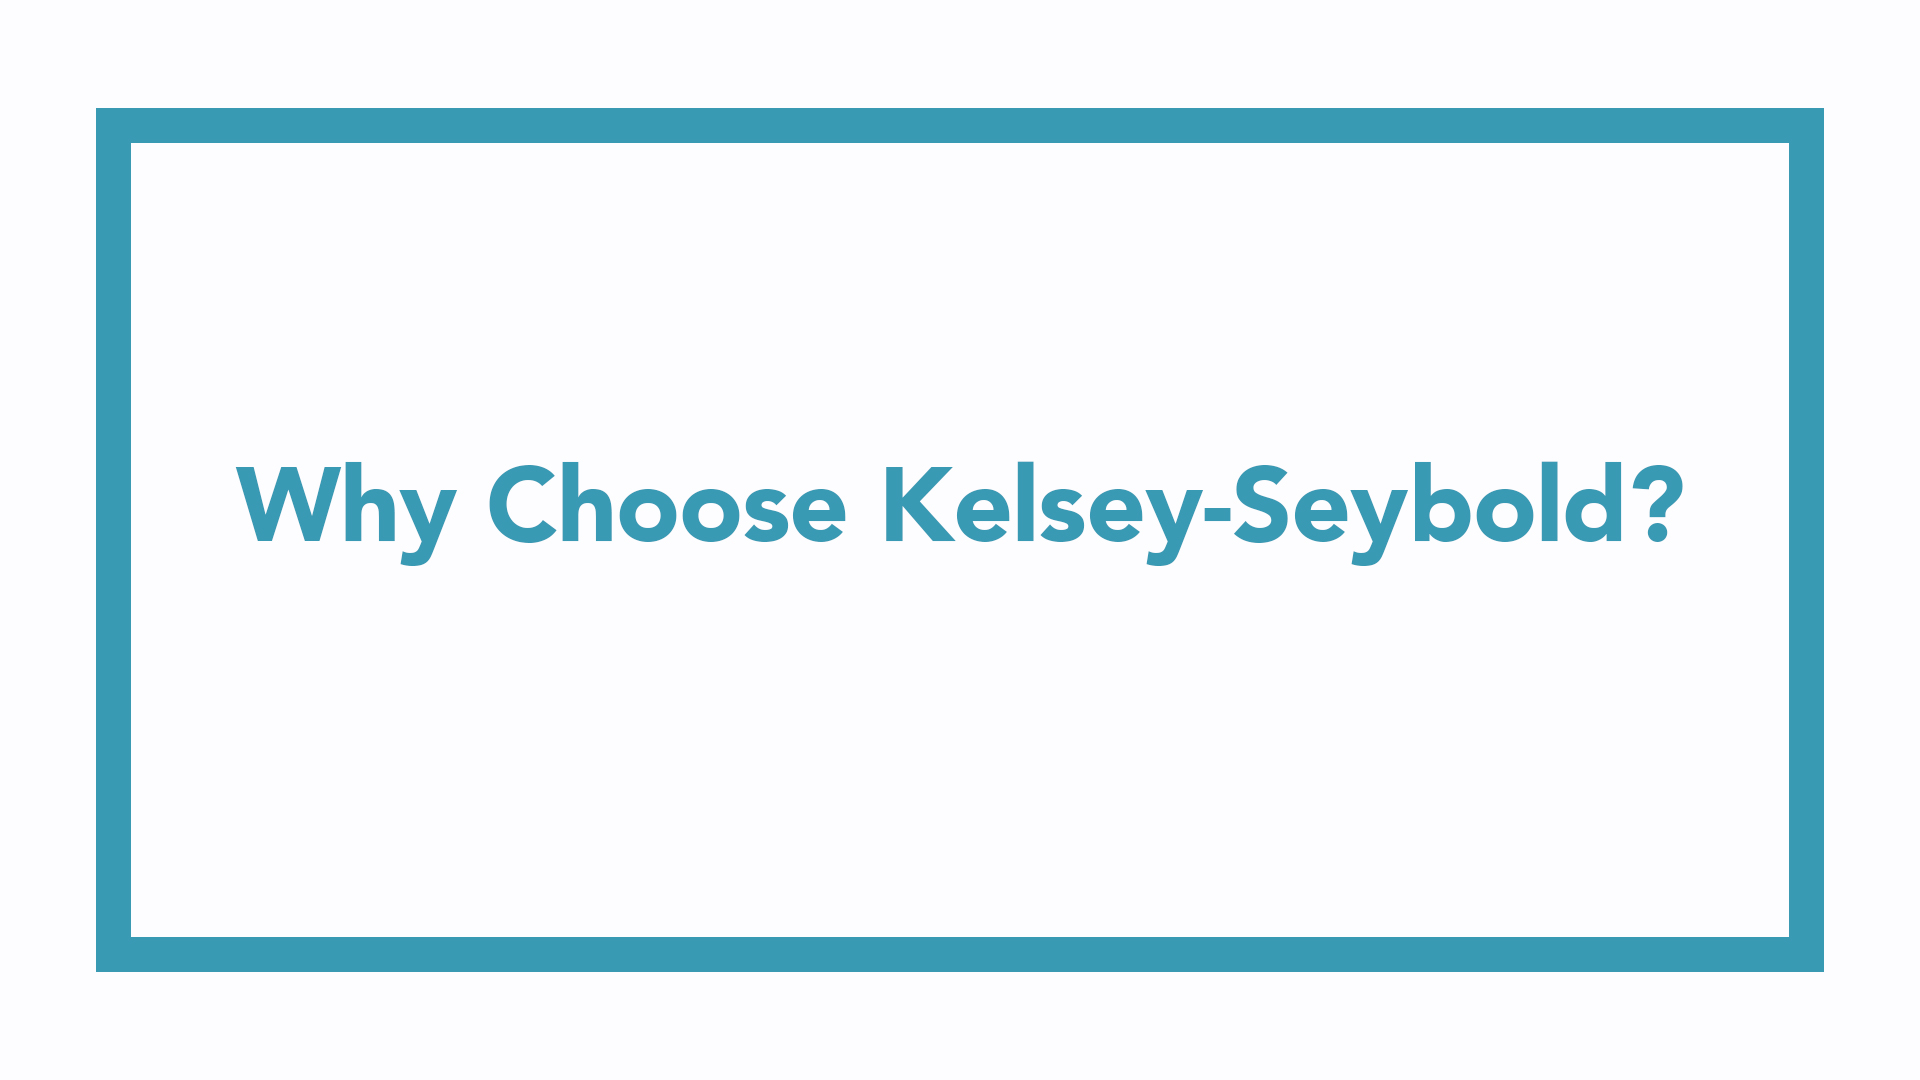 Why Choose Kelsey-Seybold?